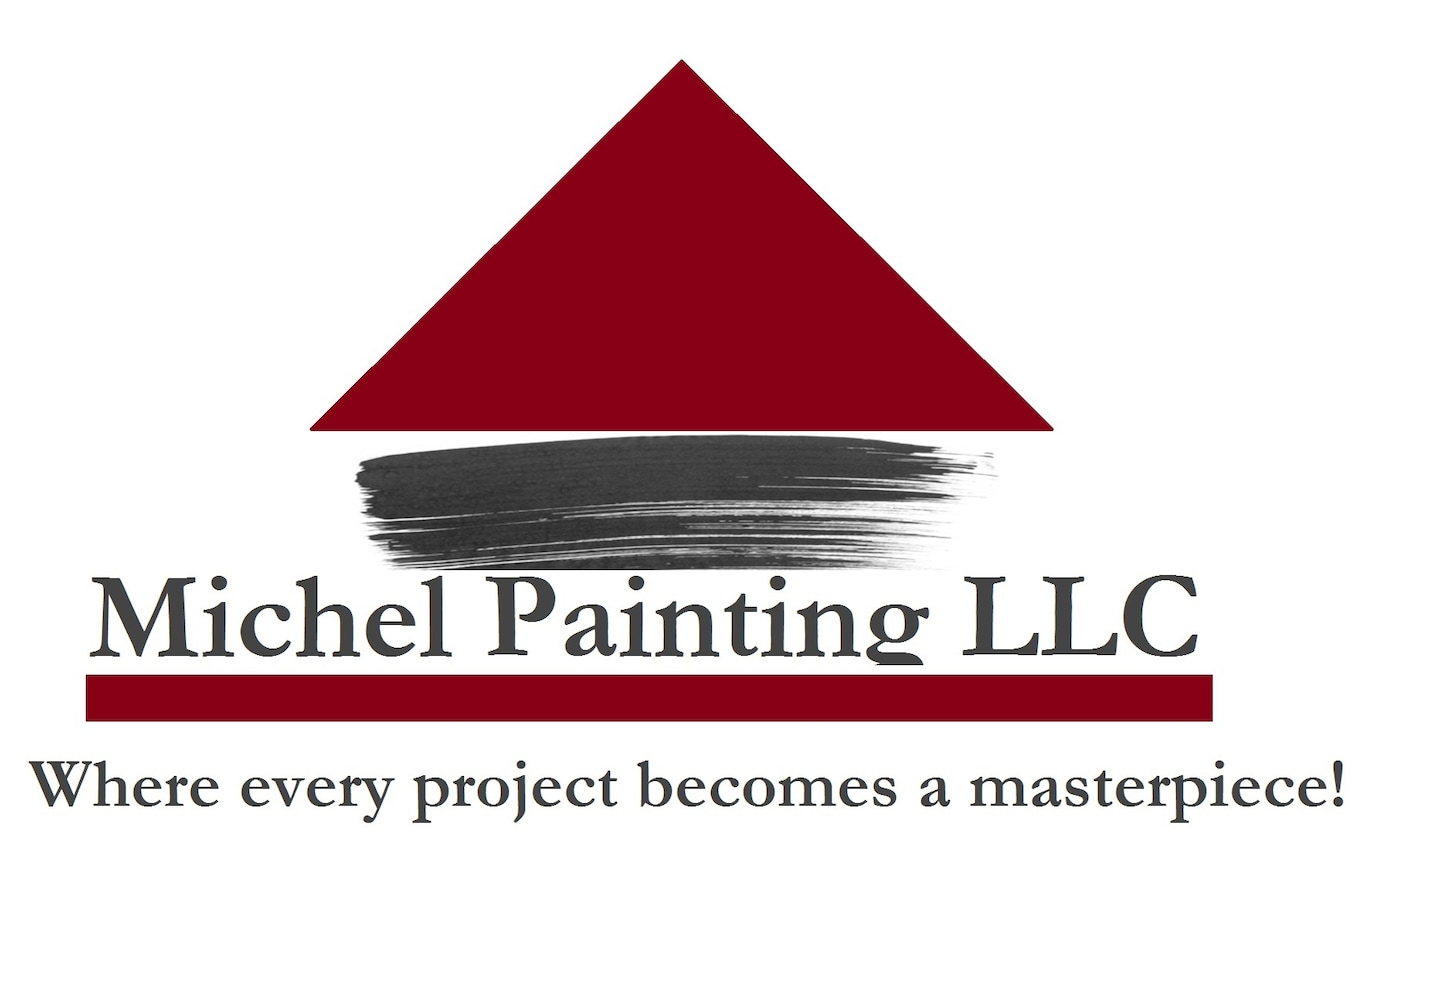 Michel Painting LLC